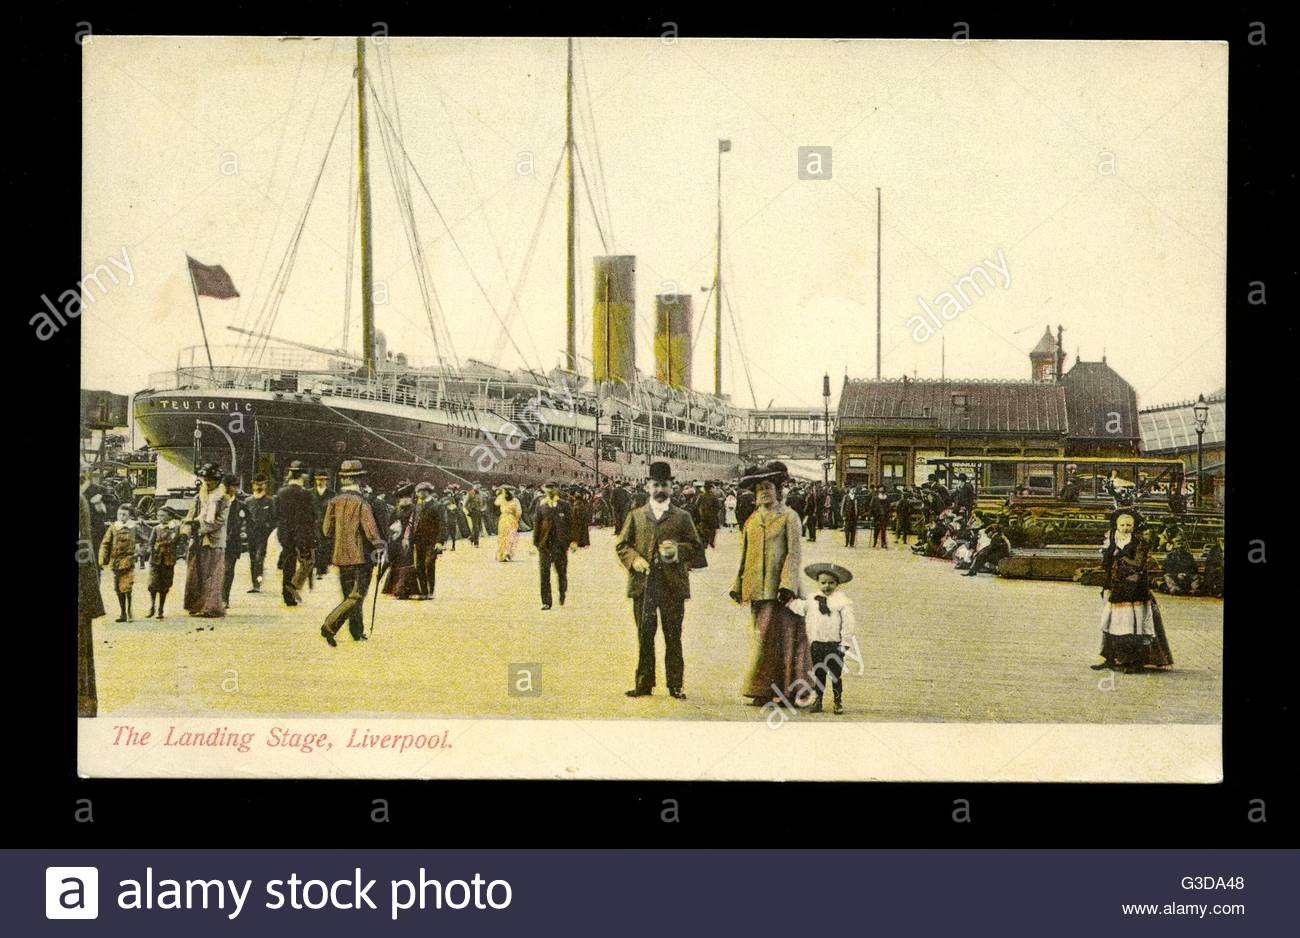 SS Teutonic of the White Star Line at the Liverpool landing stage.      Date: circa 1904 - Stock Image